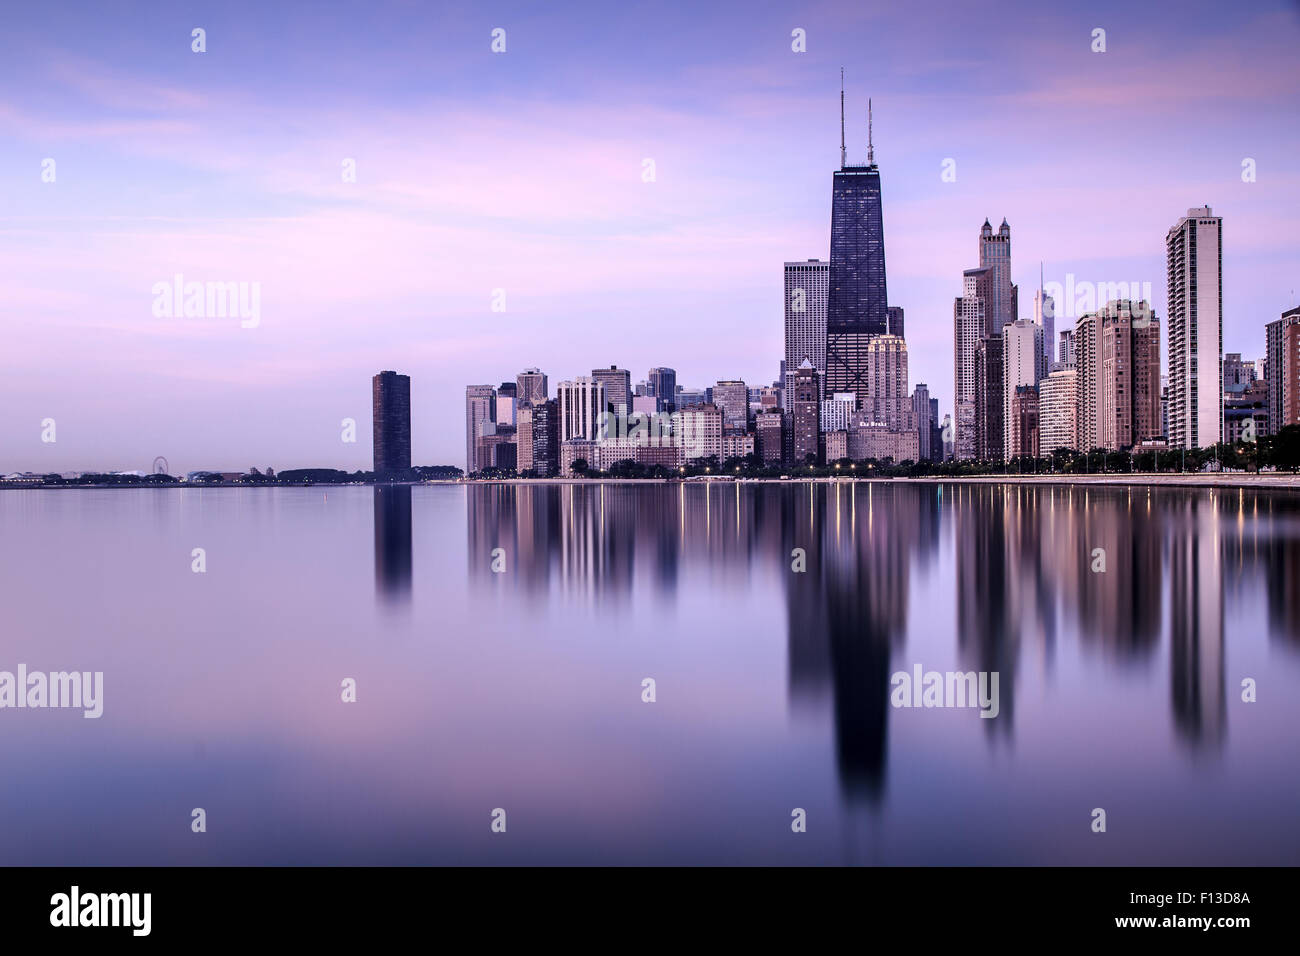 Skyline seen from North Avenue Beach, Chicago, Illinois, USA - Stock Image